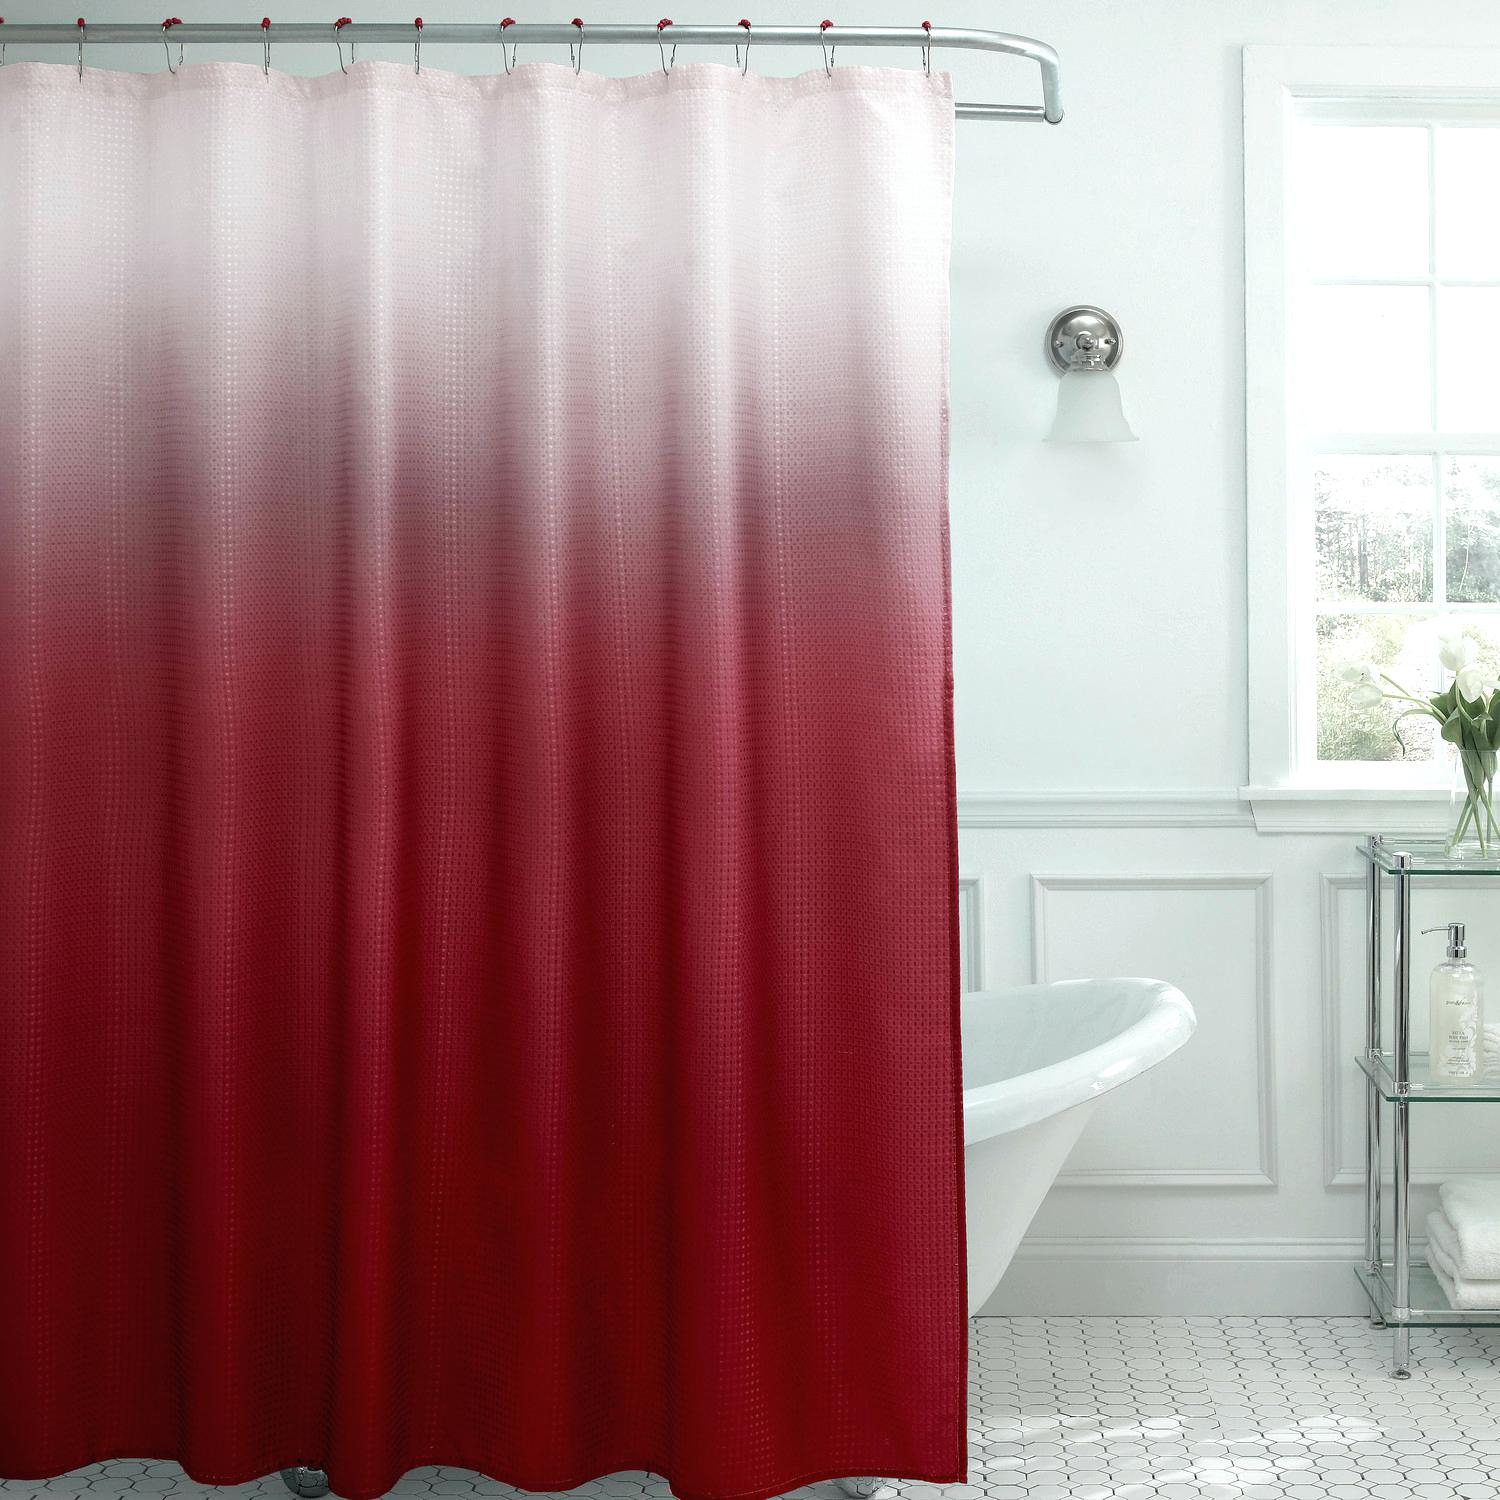 Extra Long Shower Curtain Liner 70 X 78 • Shower Curtains Ideas